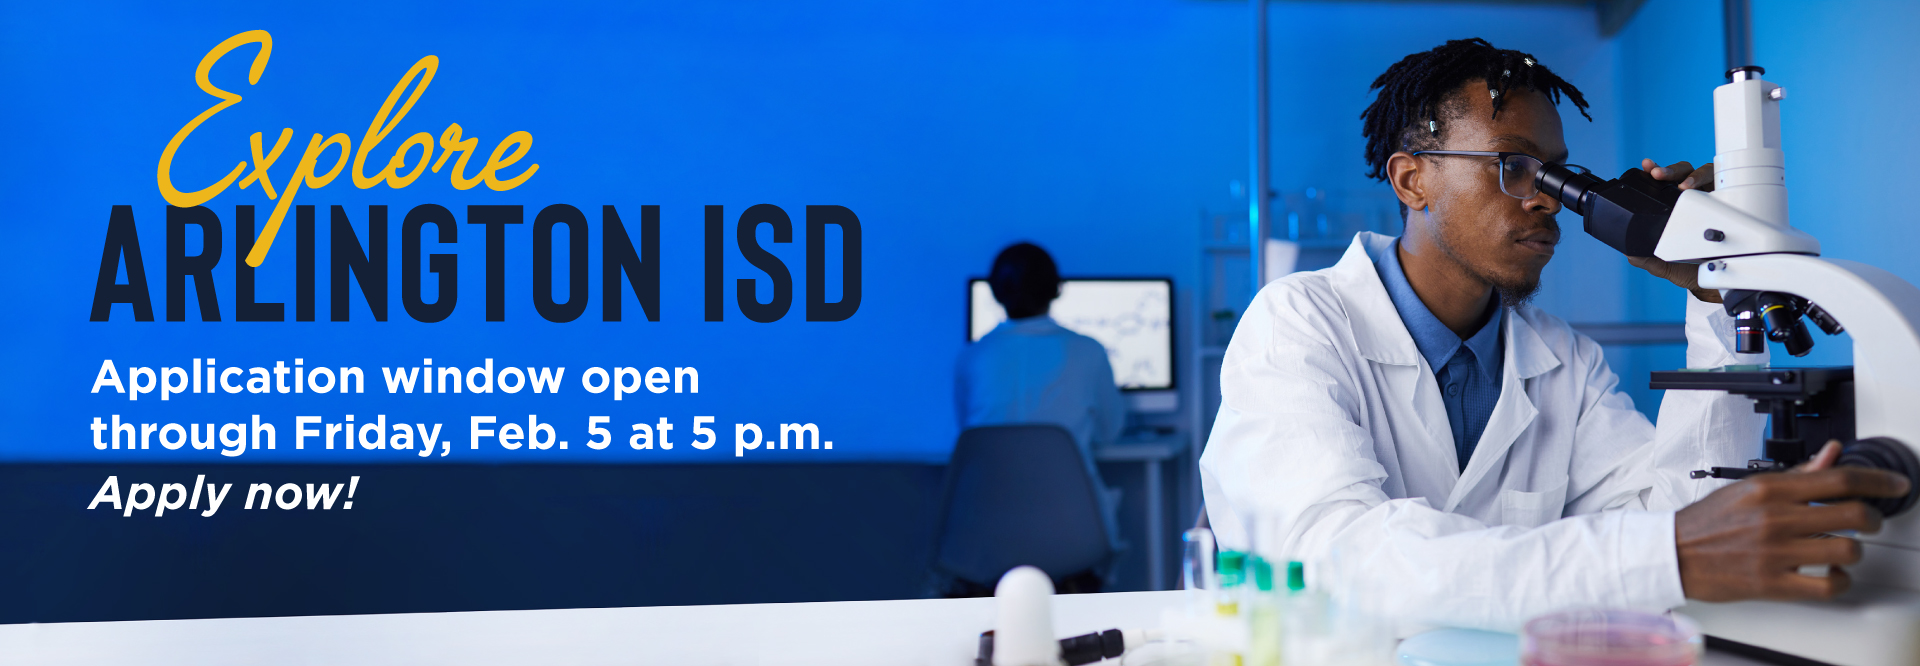 Explore Arlington ISD. Application window opens through Friday, Feb. 5 at 5 PM. Apply Now!